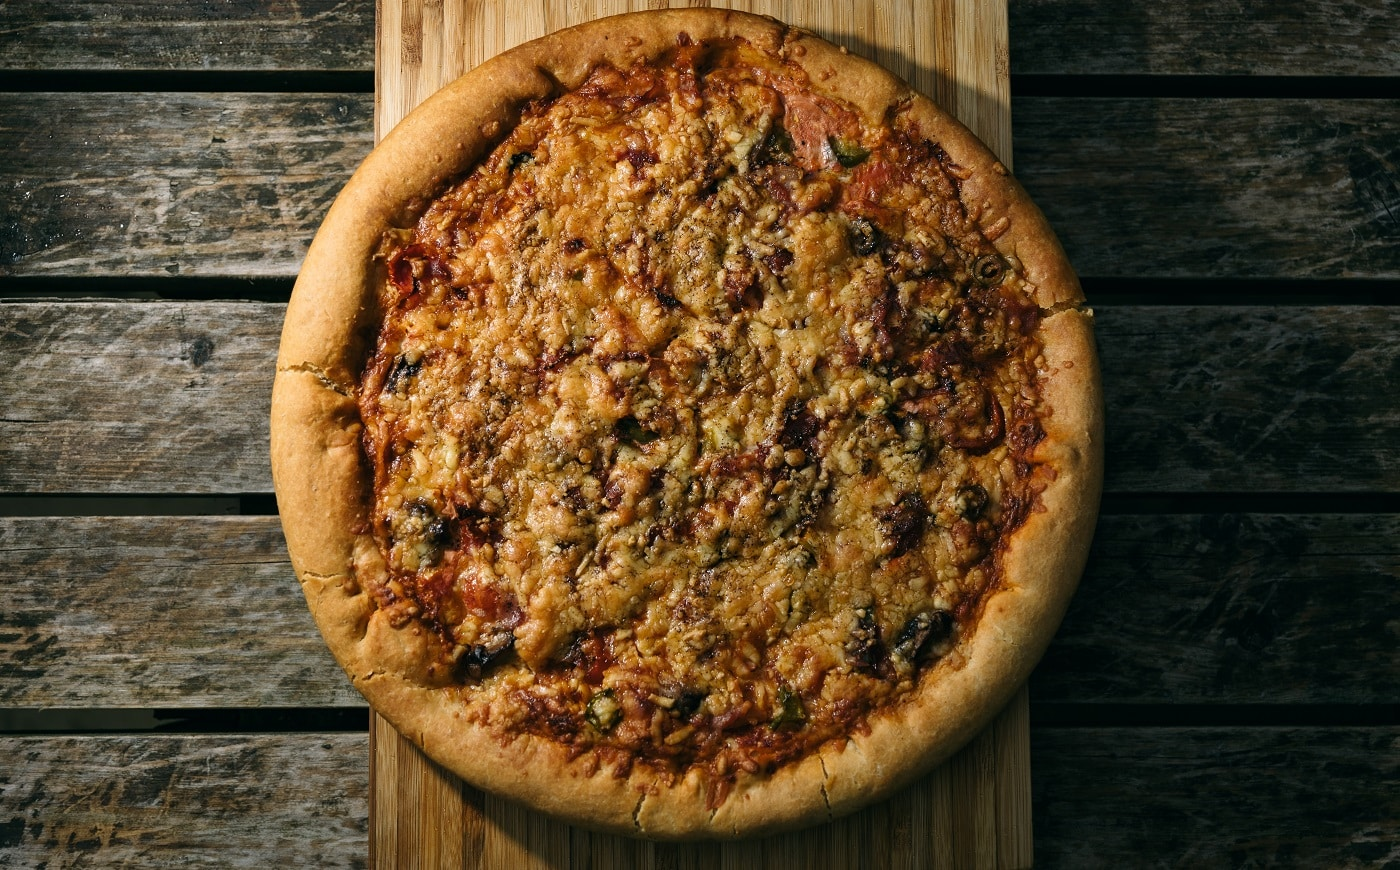 A high angle shot of a freshly baked pizza on a wooden surface